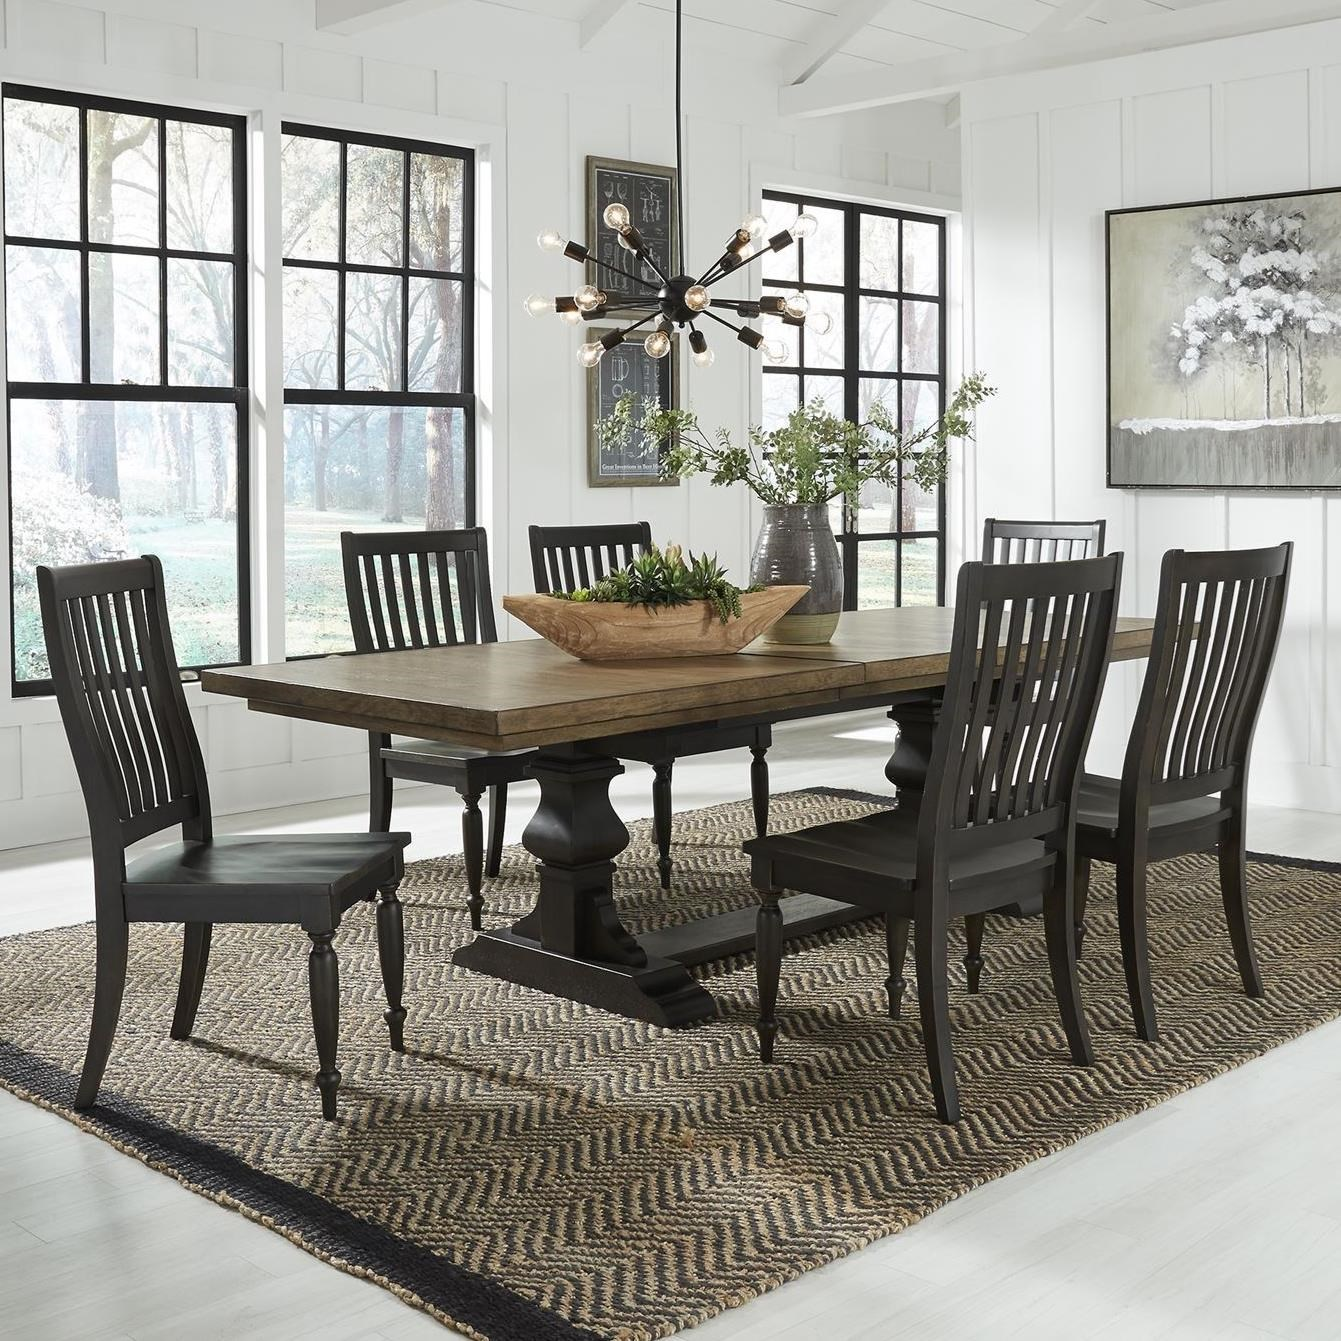 Harvest Home 7-Piece Trestle Table Set by Freedom Furniture at Ruby Gordon Home